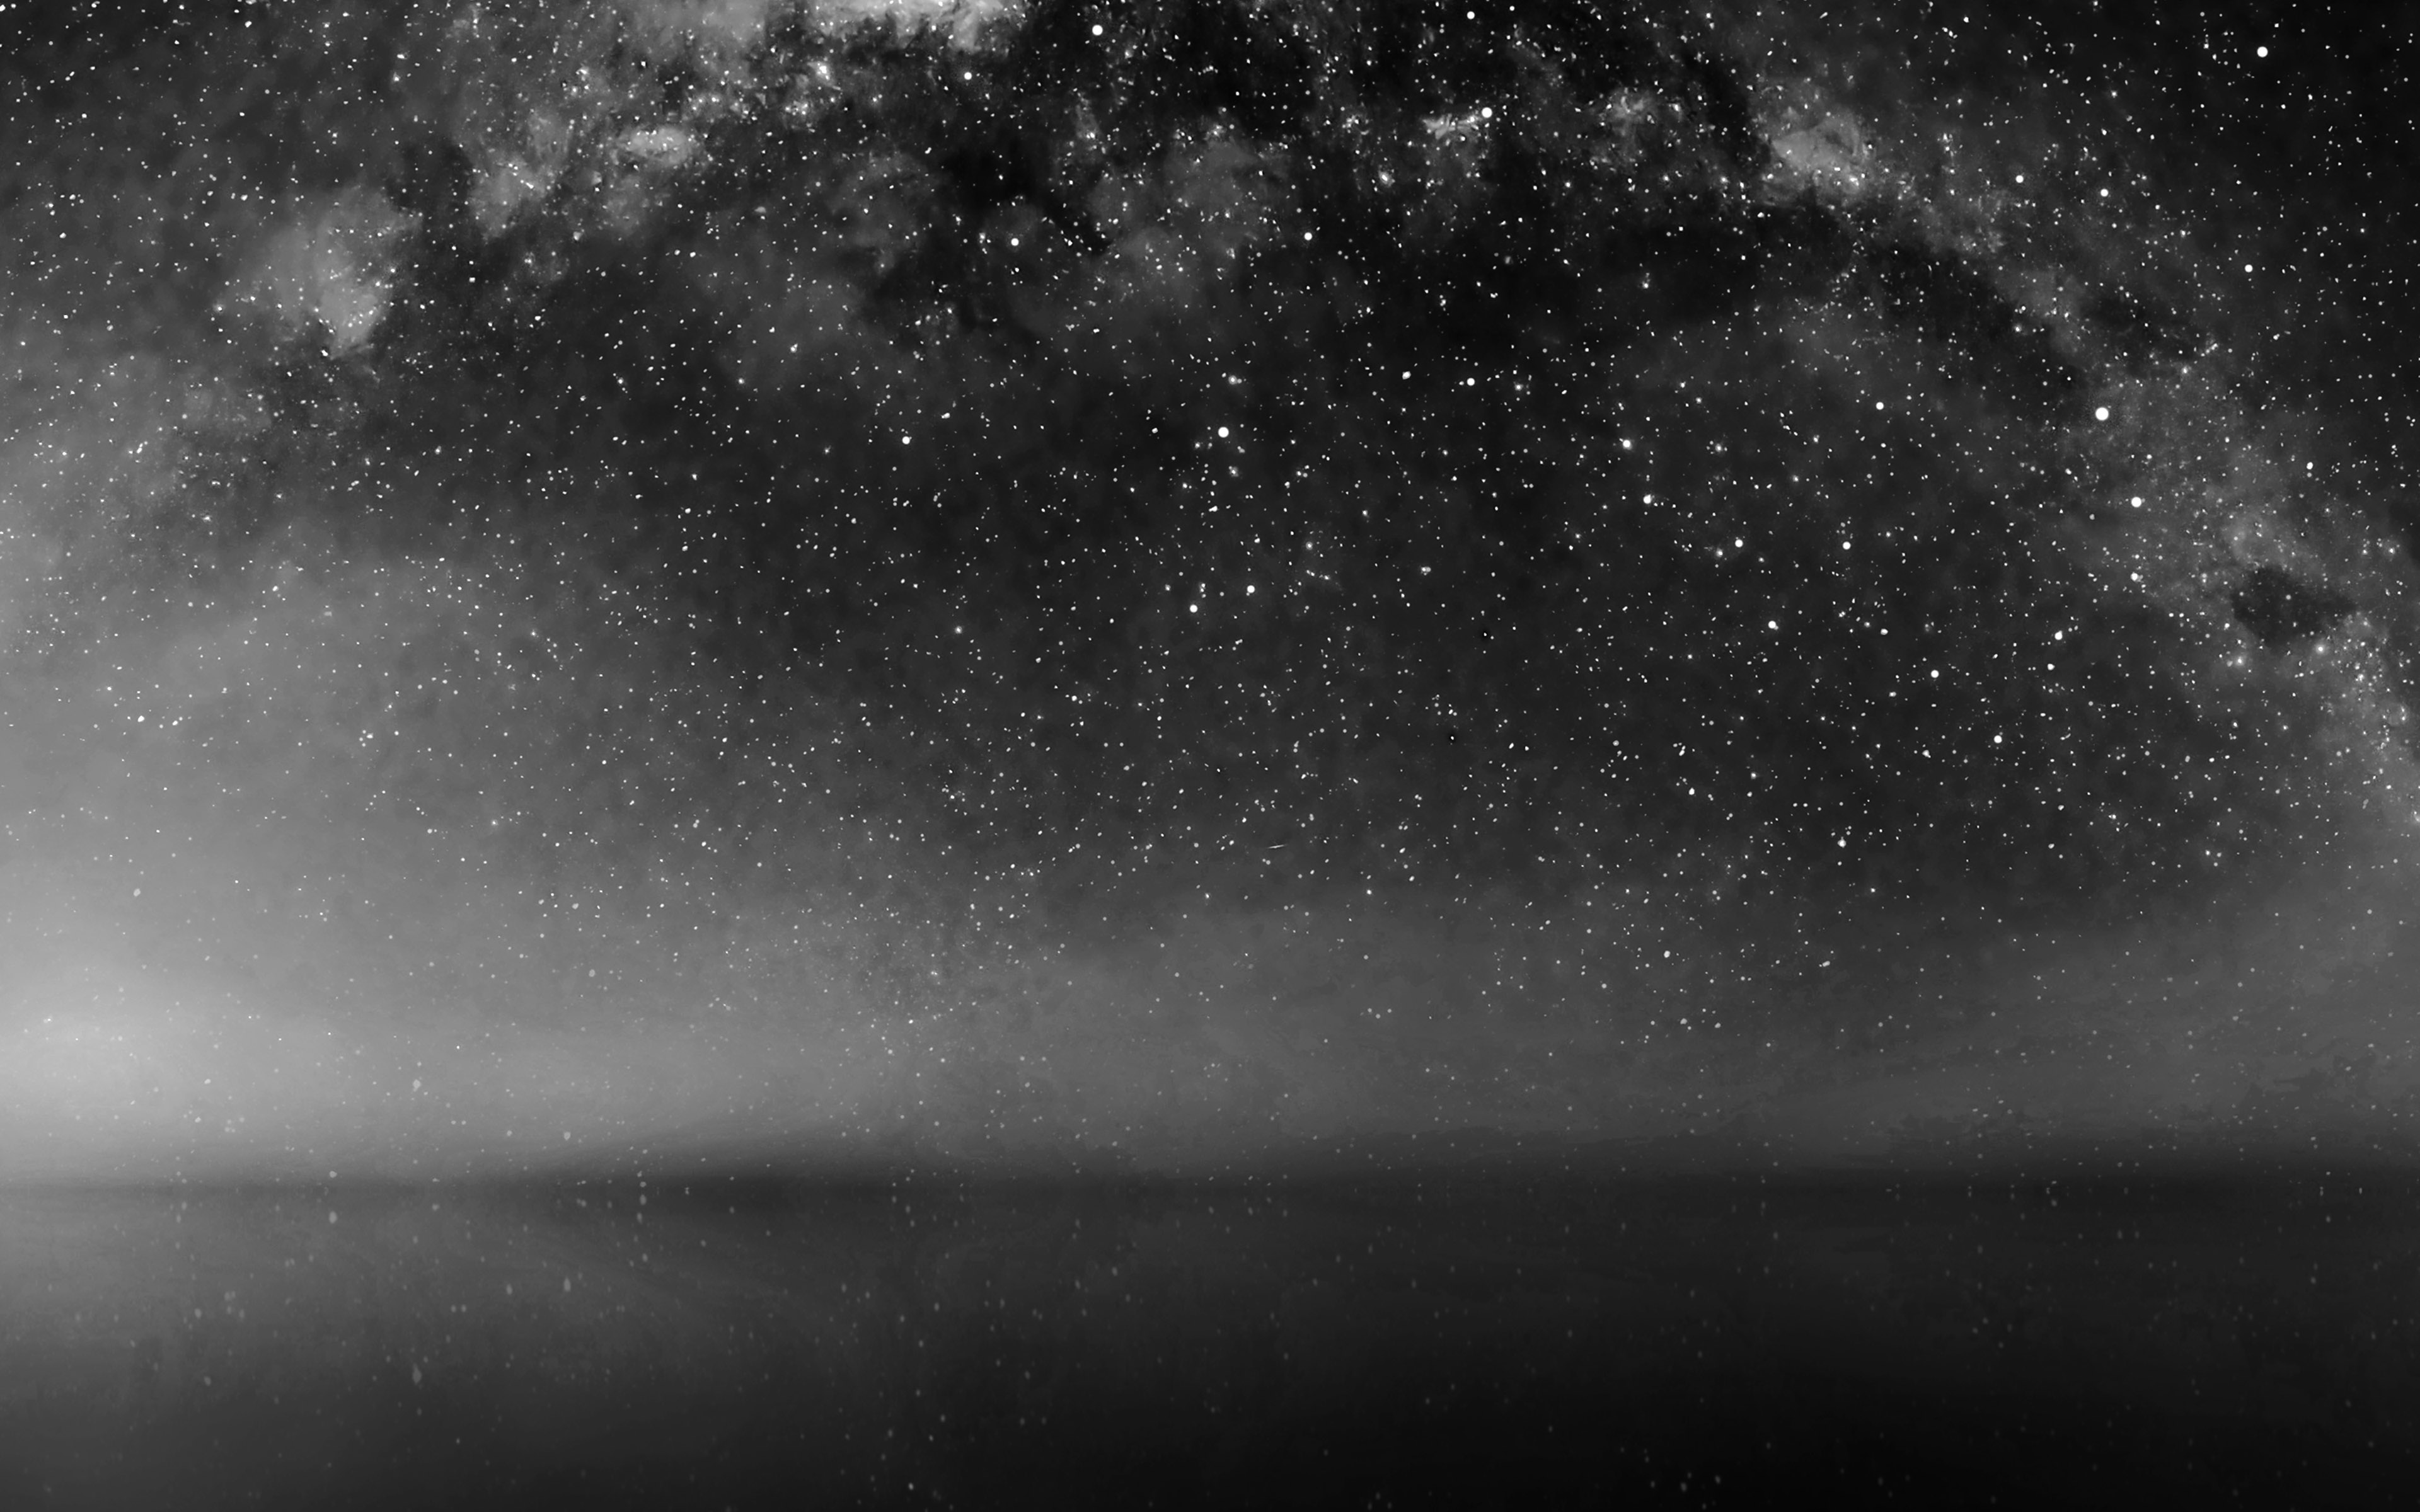 mf30-cosmos-dark-night-live-lake-space-starry - Papers.co